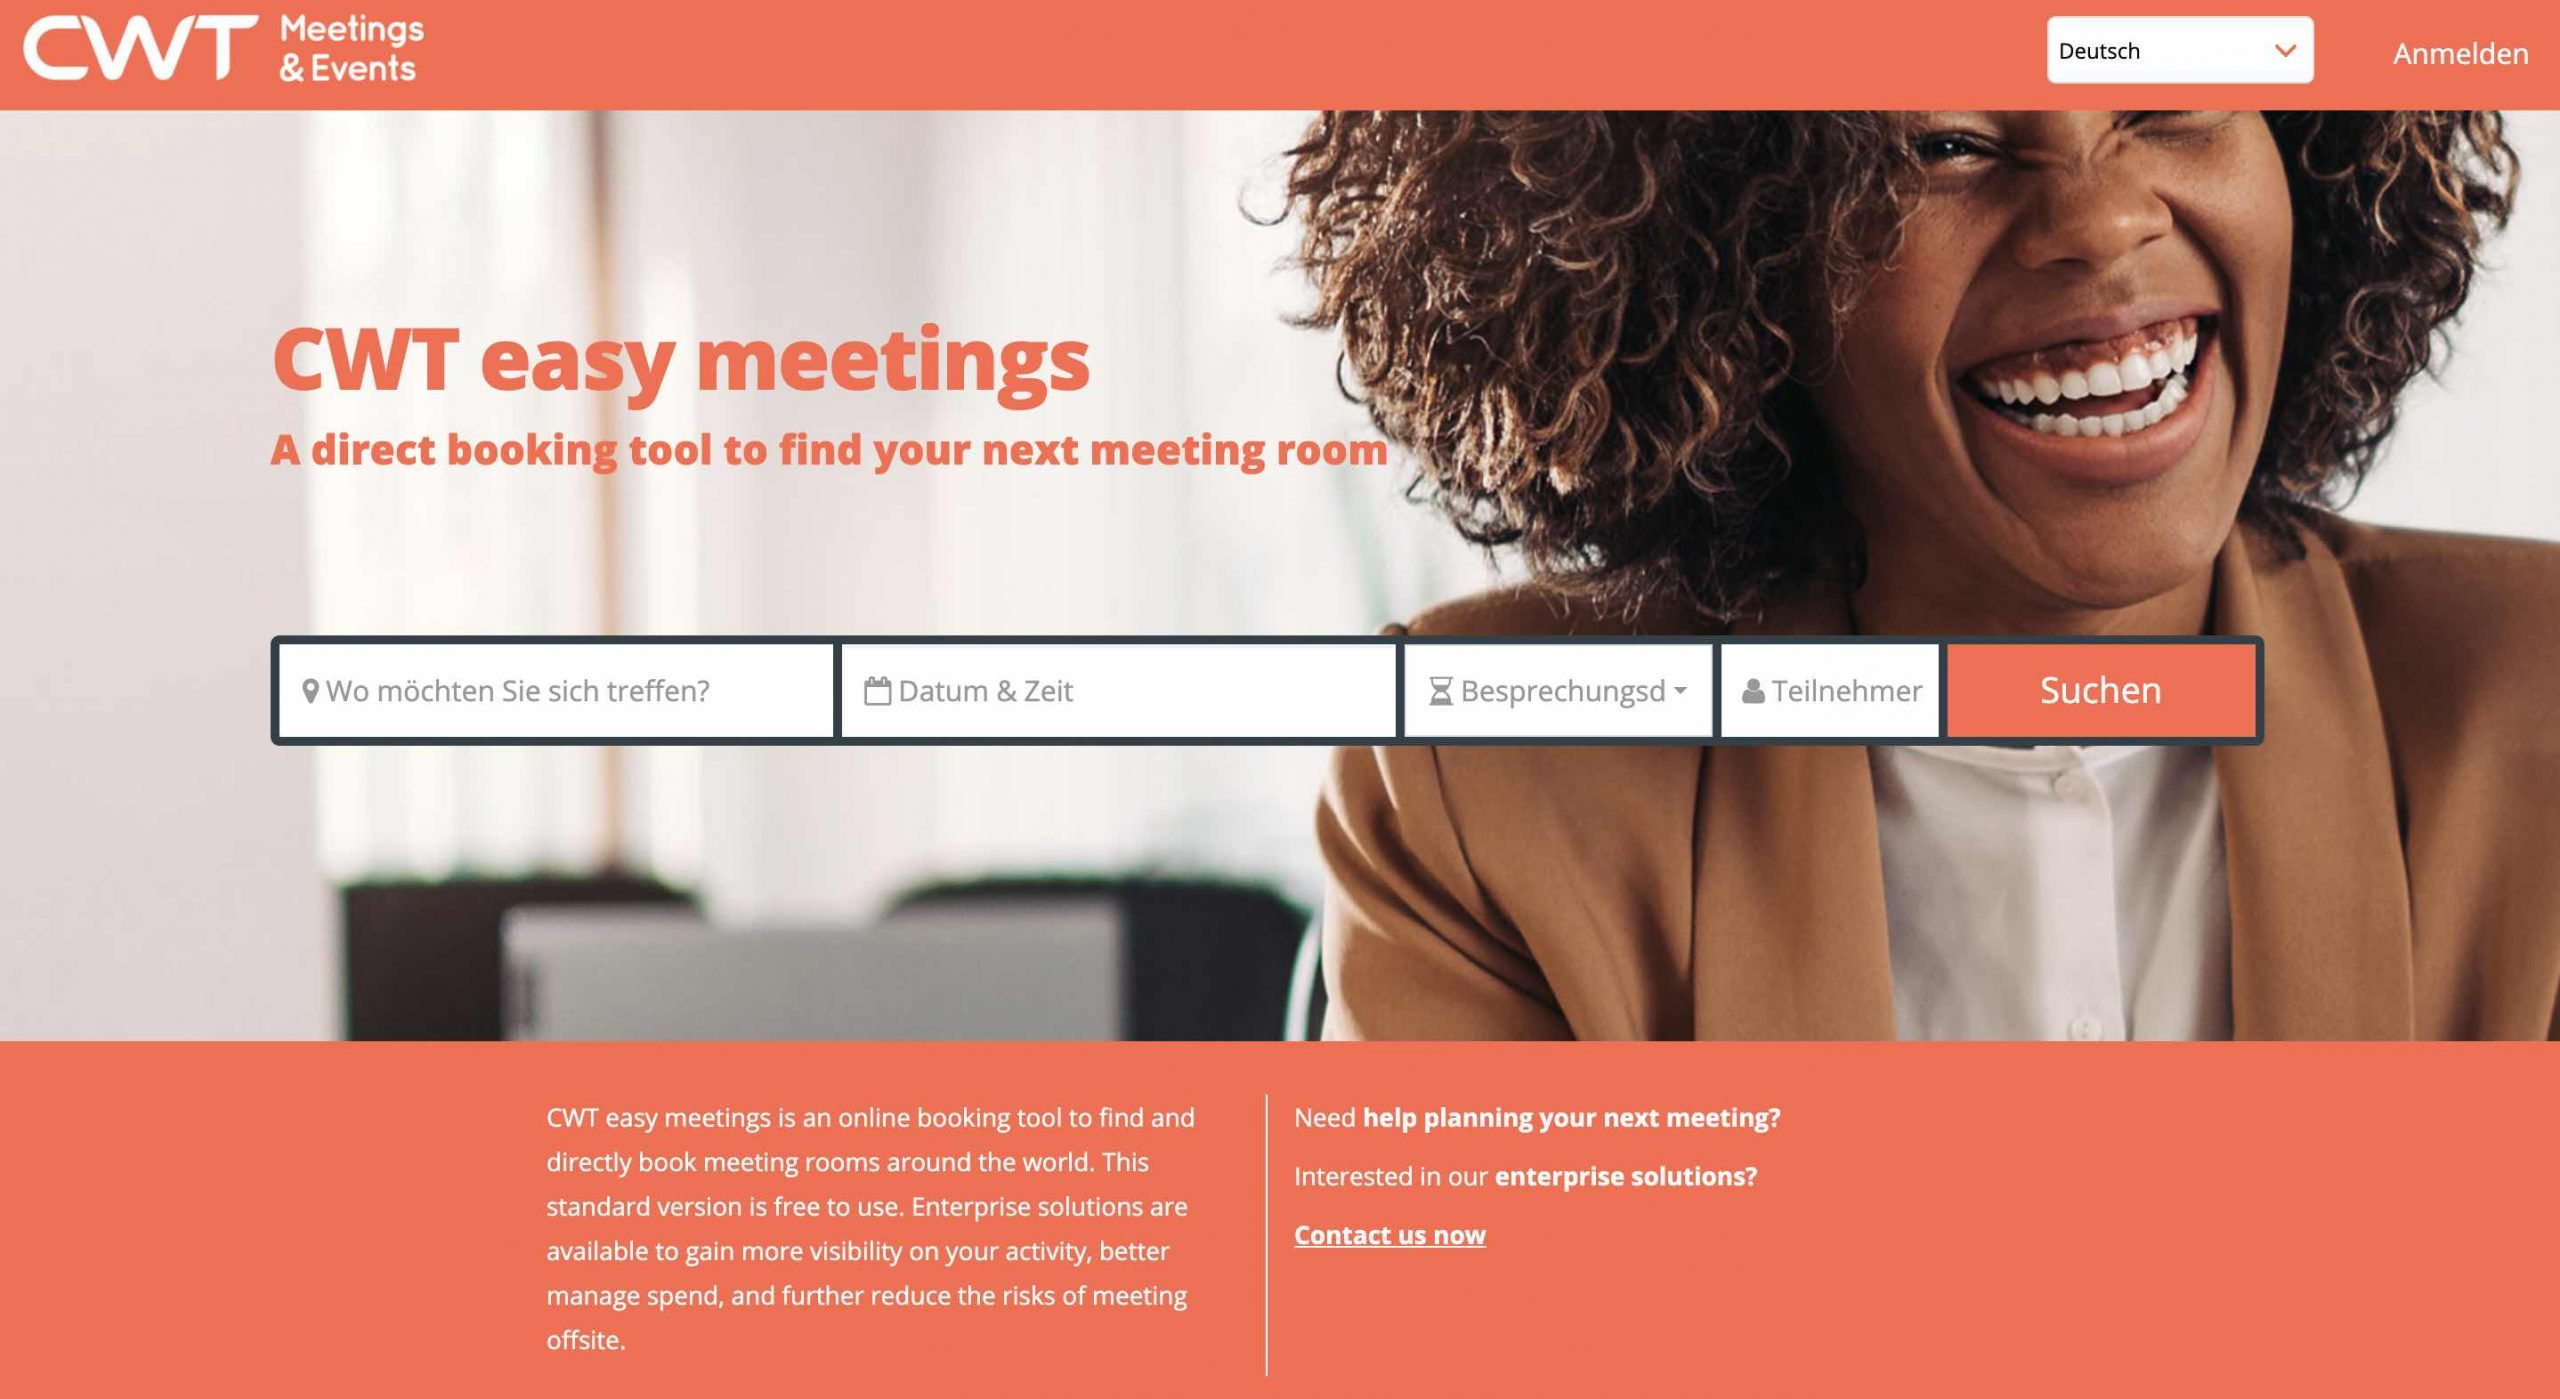 CWT easy meetings launched